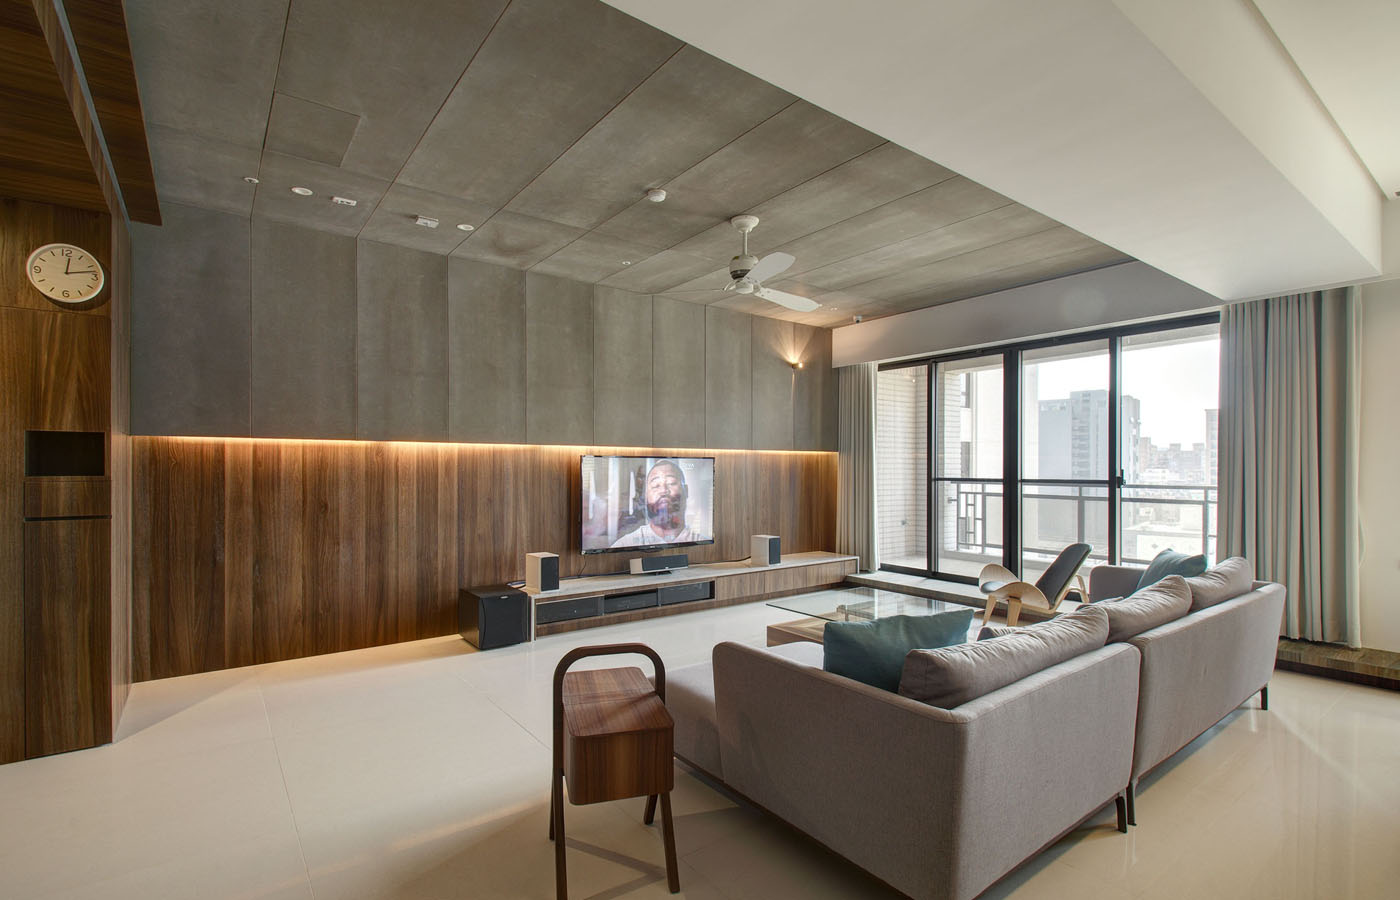 Modern apartment designs by phase6 design studio - Studio interior design ...